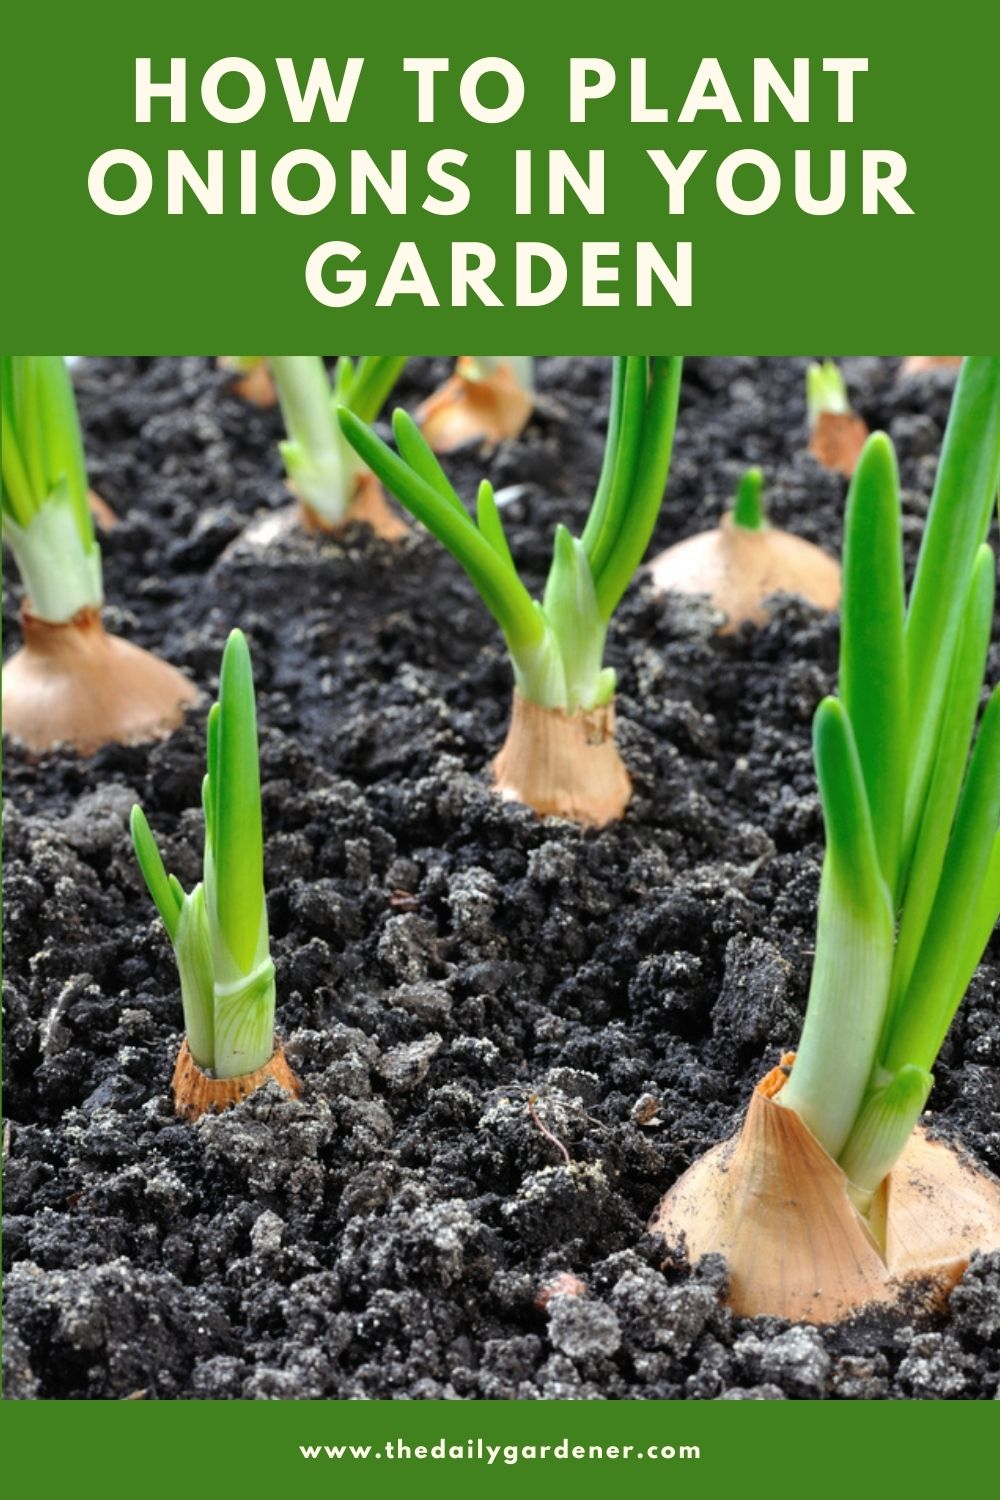 How to Plant Onions in Your Garden (Tricks to Care!) 2